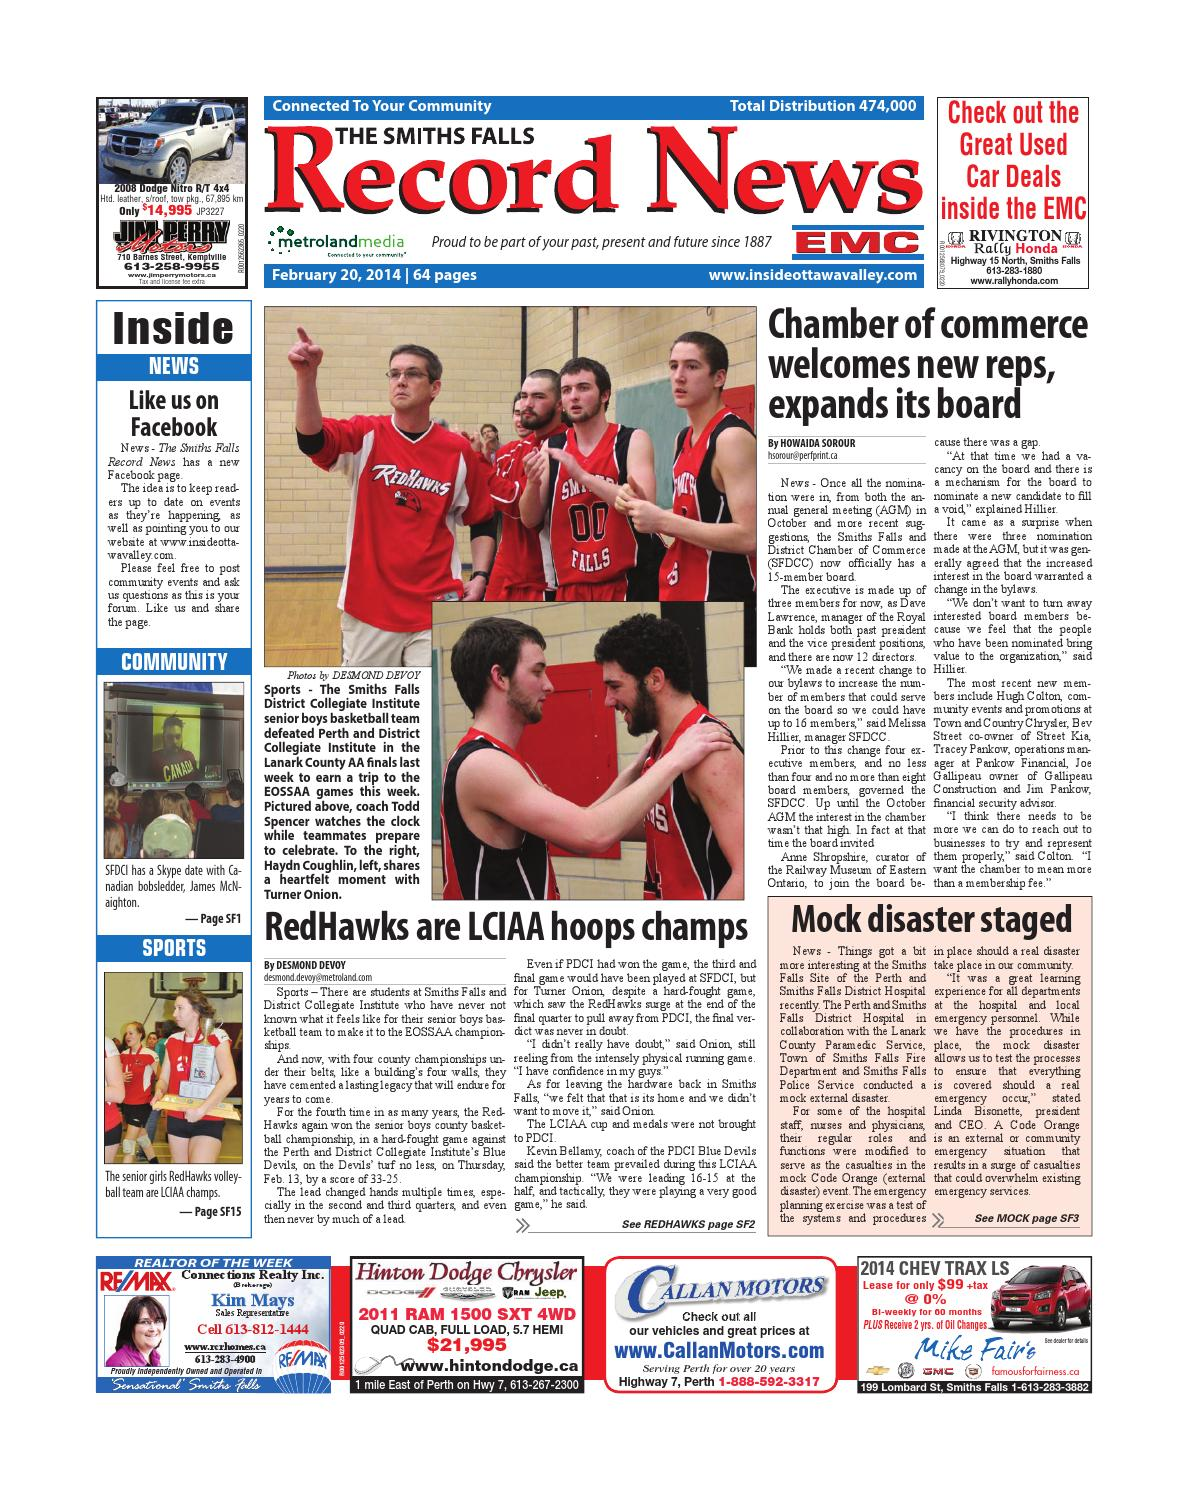 fc82880d4c Smithsfalls022014 by Metroland East - Smiths Falls Record News - issuu